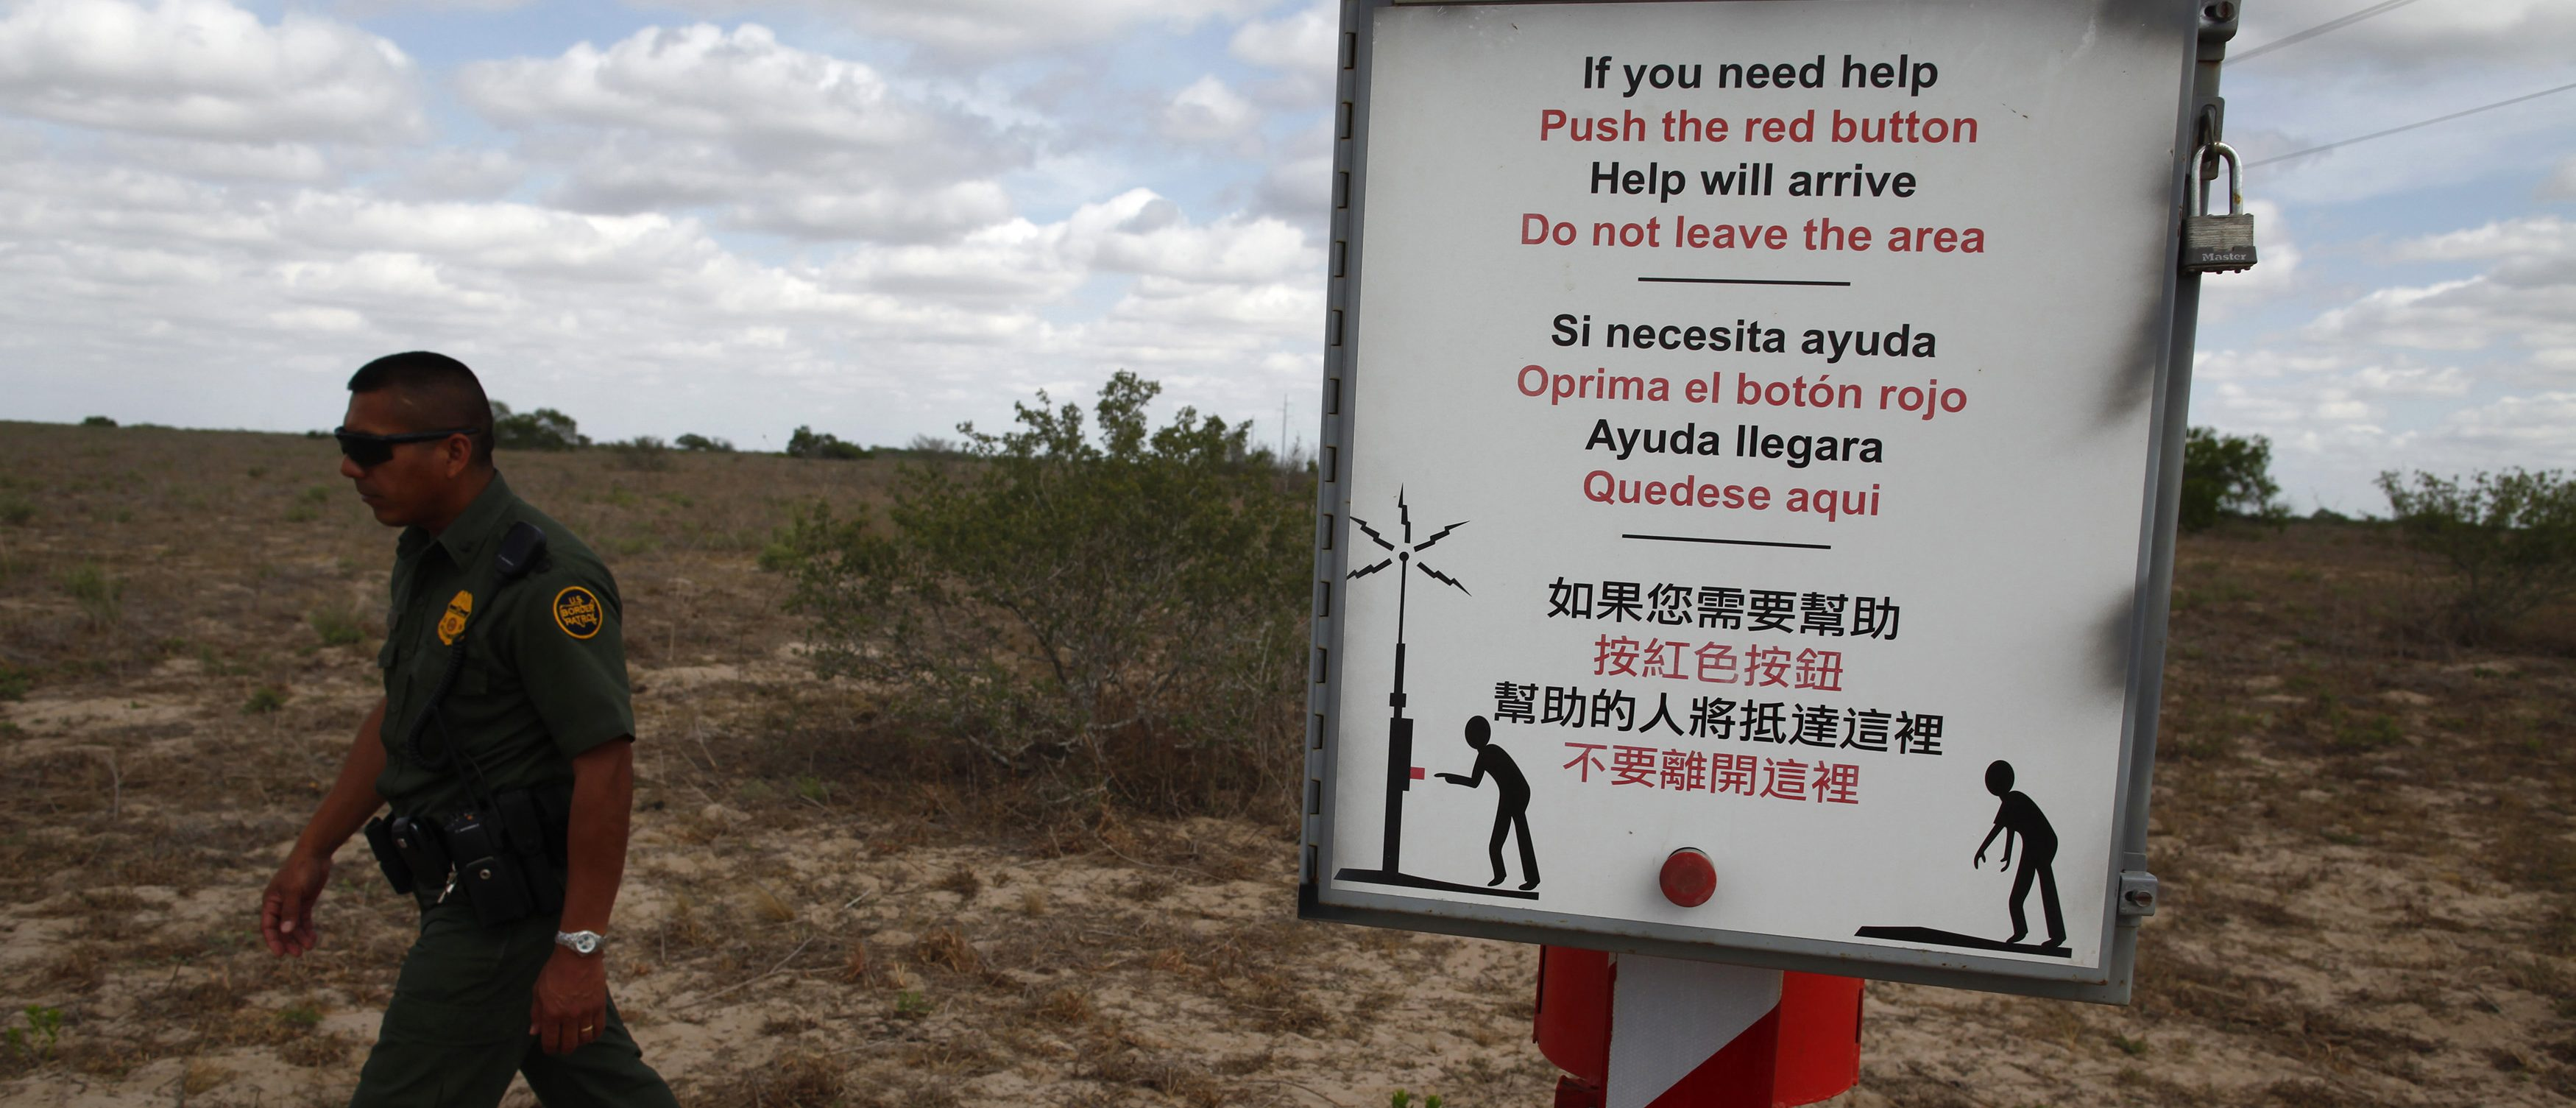 "A U.S. Border Patrol agent walks past a rescue beacon near Falfurrias, Texas March 29, 2013. Brooks County has become an epicentre for illegal immigrant deaths in Texas. In 2012, sheriff's deputies found 129 bodies there, six times the number recorded in 2010. Most of those who died succumbed to the punishing heat and rough terrain that comprise the ranch lands of south Texas. Many migrants spend a few days in a ""stash house"", such as the Casa del Migrante, in Reynosa, Mexico, and many are ignorant of the treacherous journey ahead. Picture taken March 29, 2013. REUTERS/Eric Thayer"